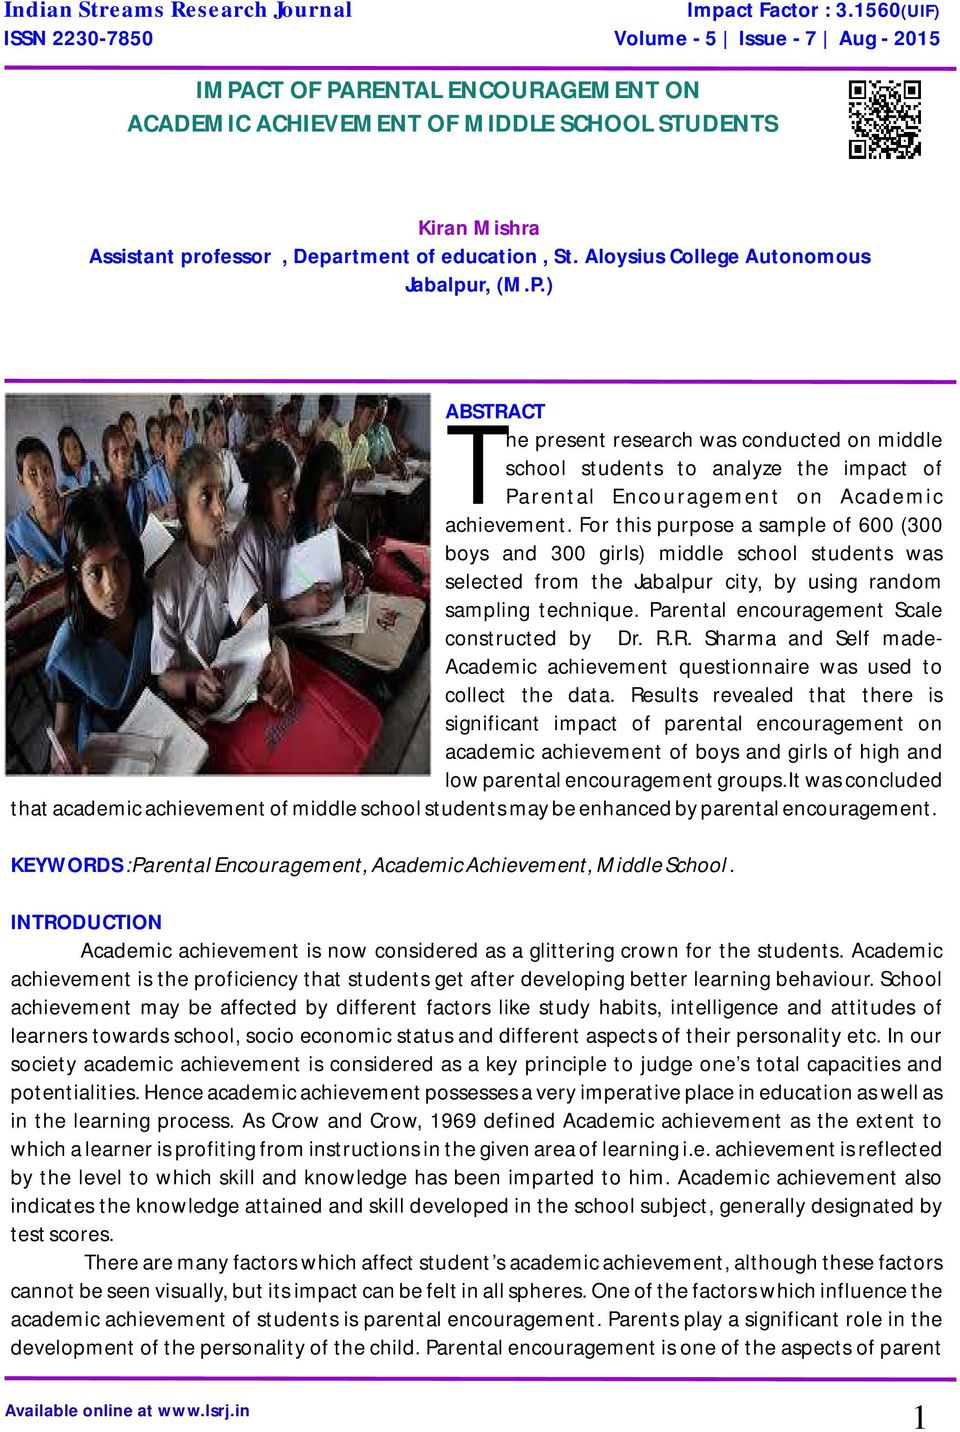 St. Aloysius College Autonomous Jabalpur, (M.P.) ABSTRACT he present research was conducted on middle school students to analyze the impact of TParental Encouragement on Academic achievement.